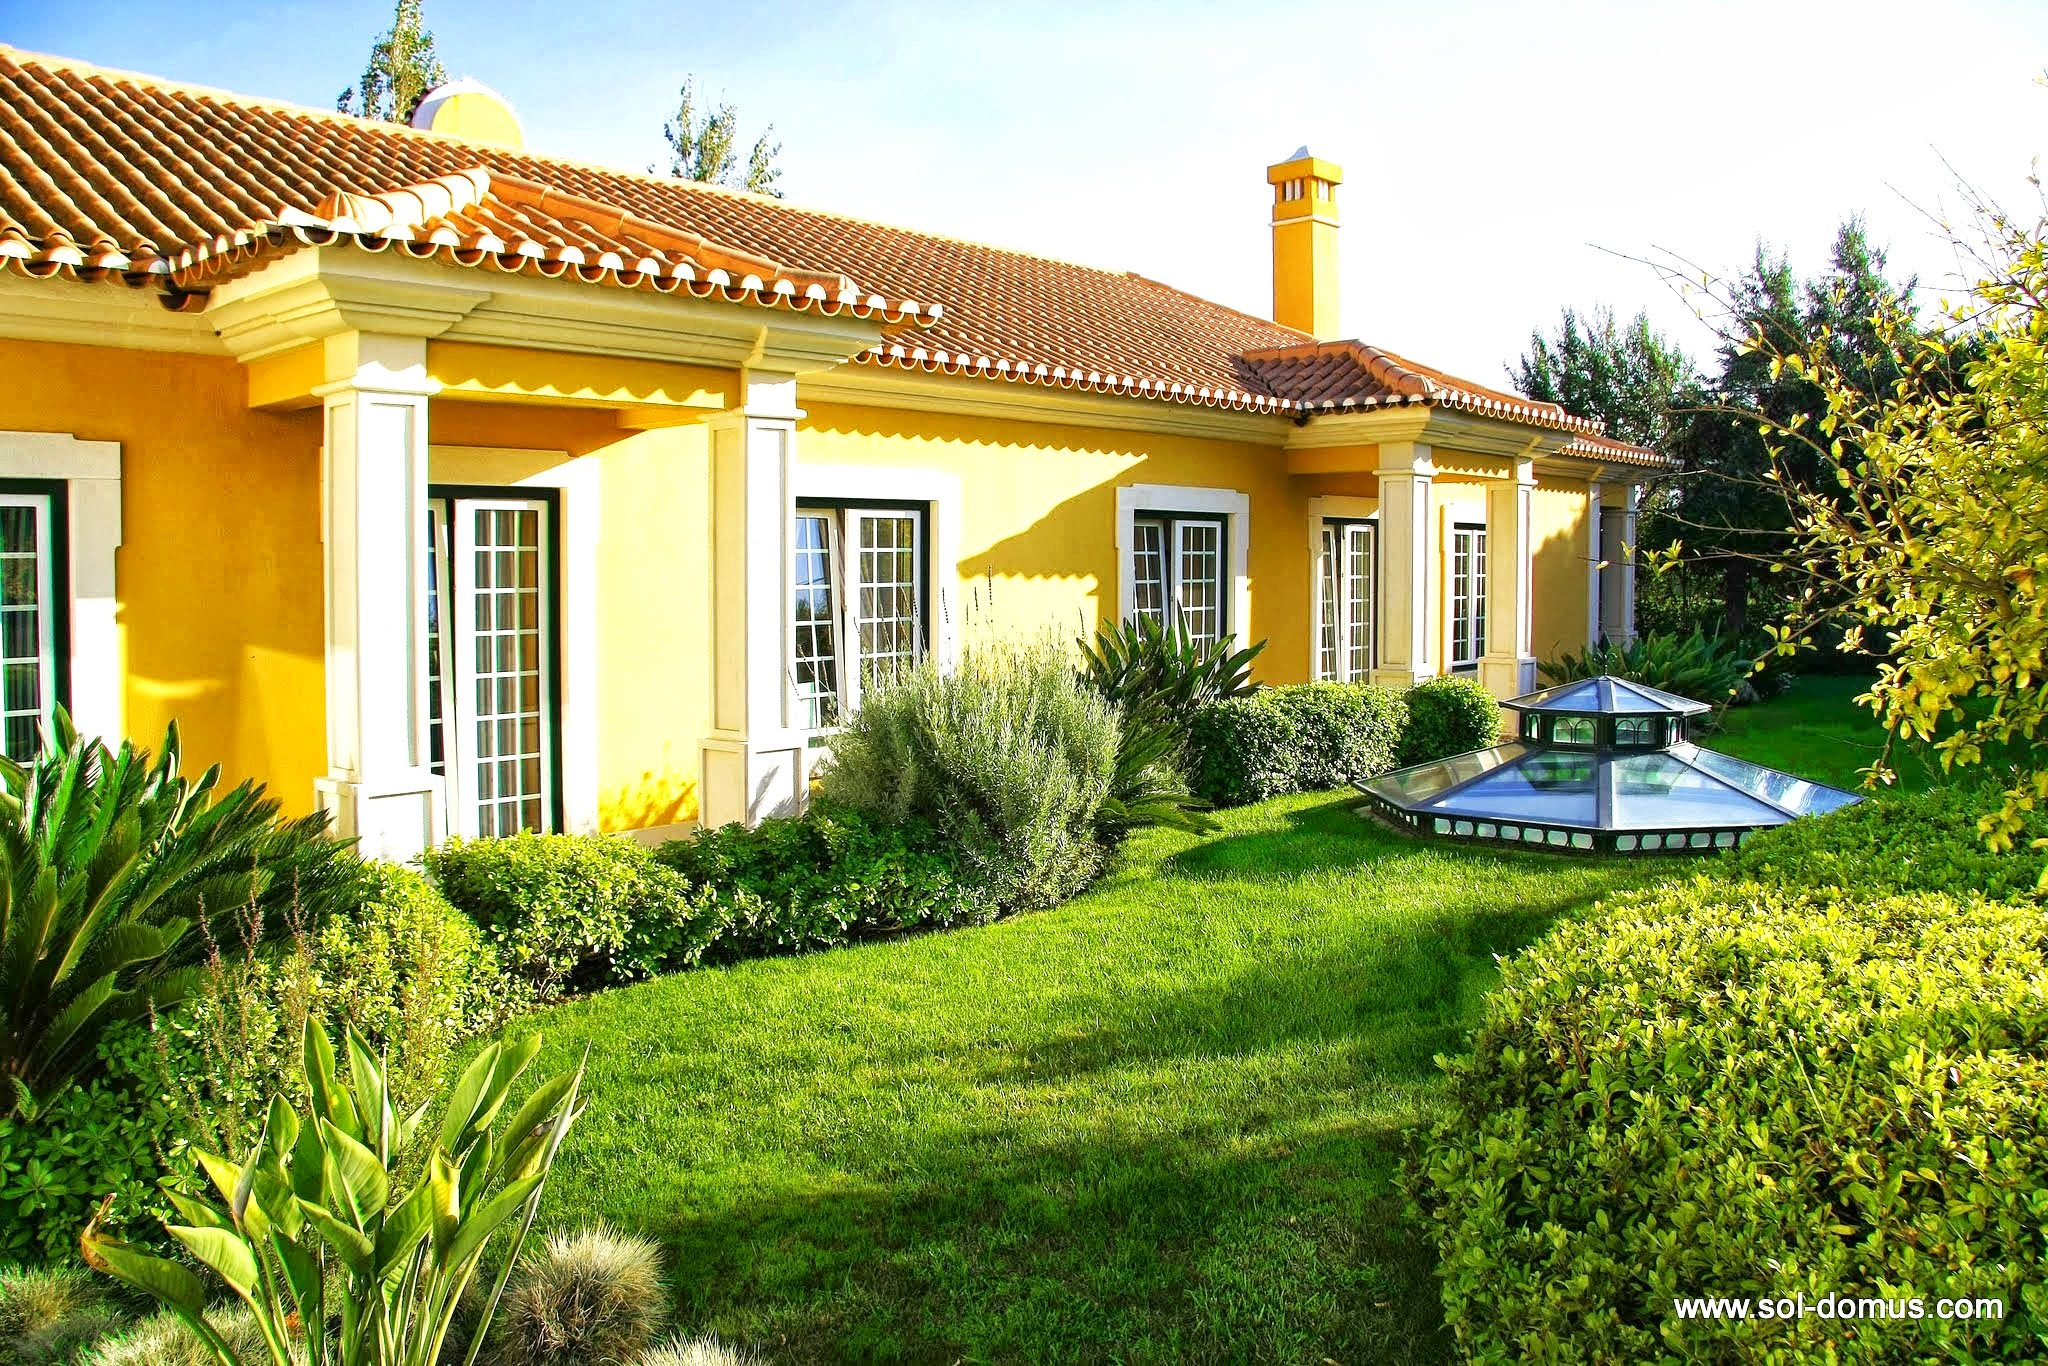 Cascais Glitz Villa – Luxury villa with private heated pool in golf resort near Cascais